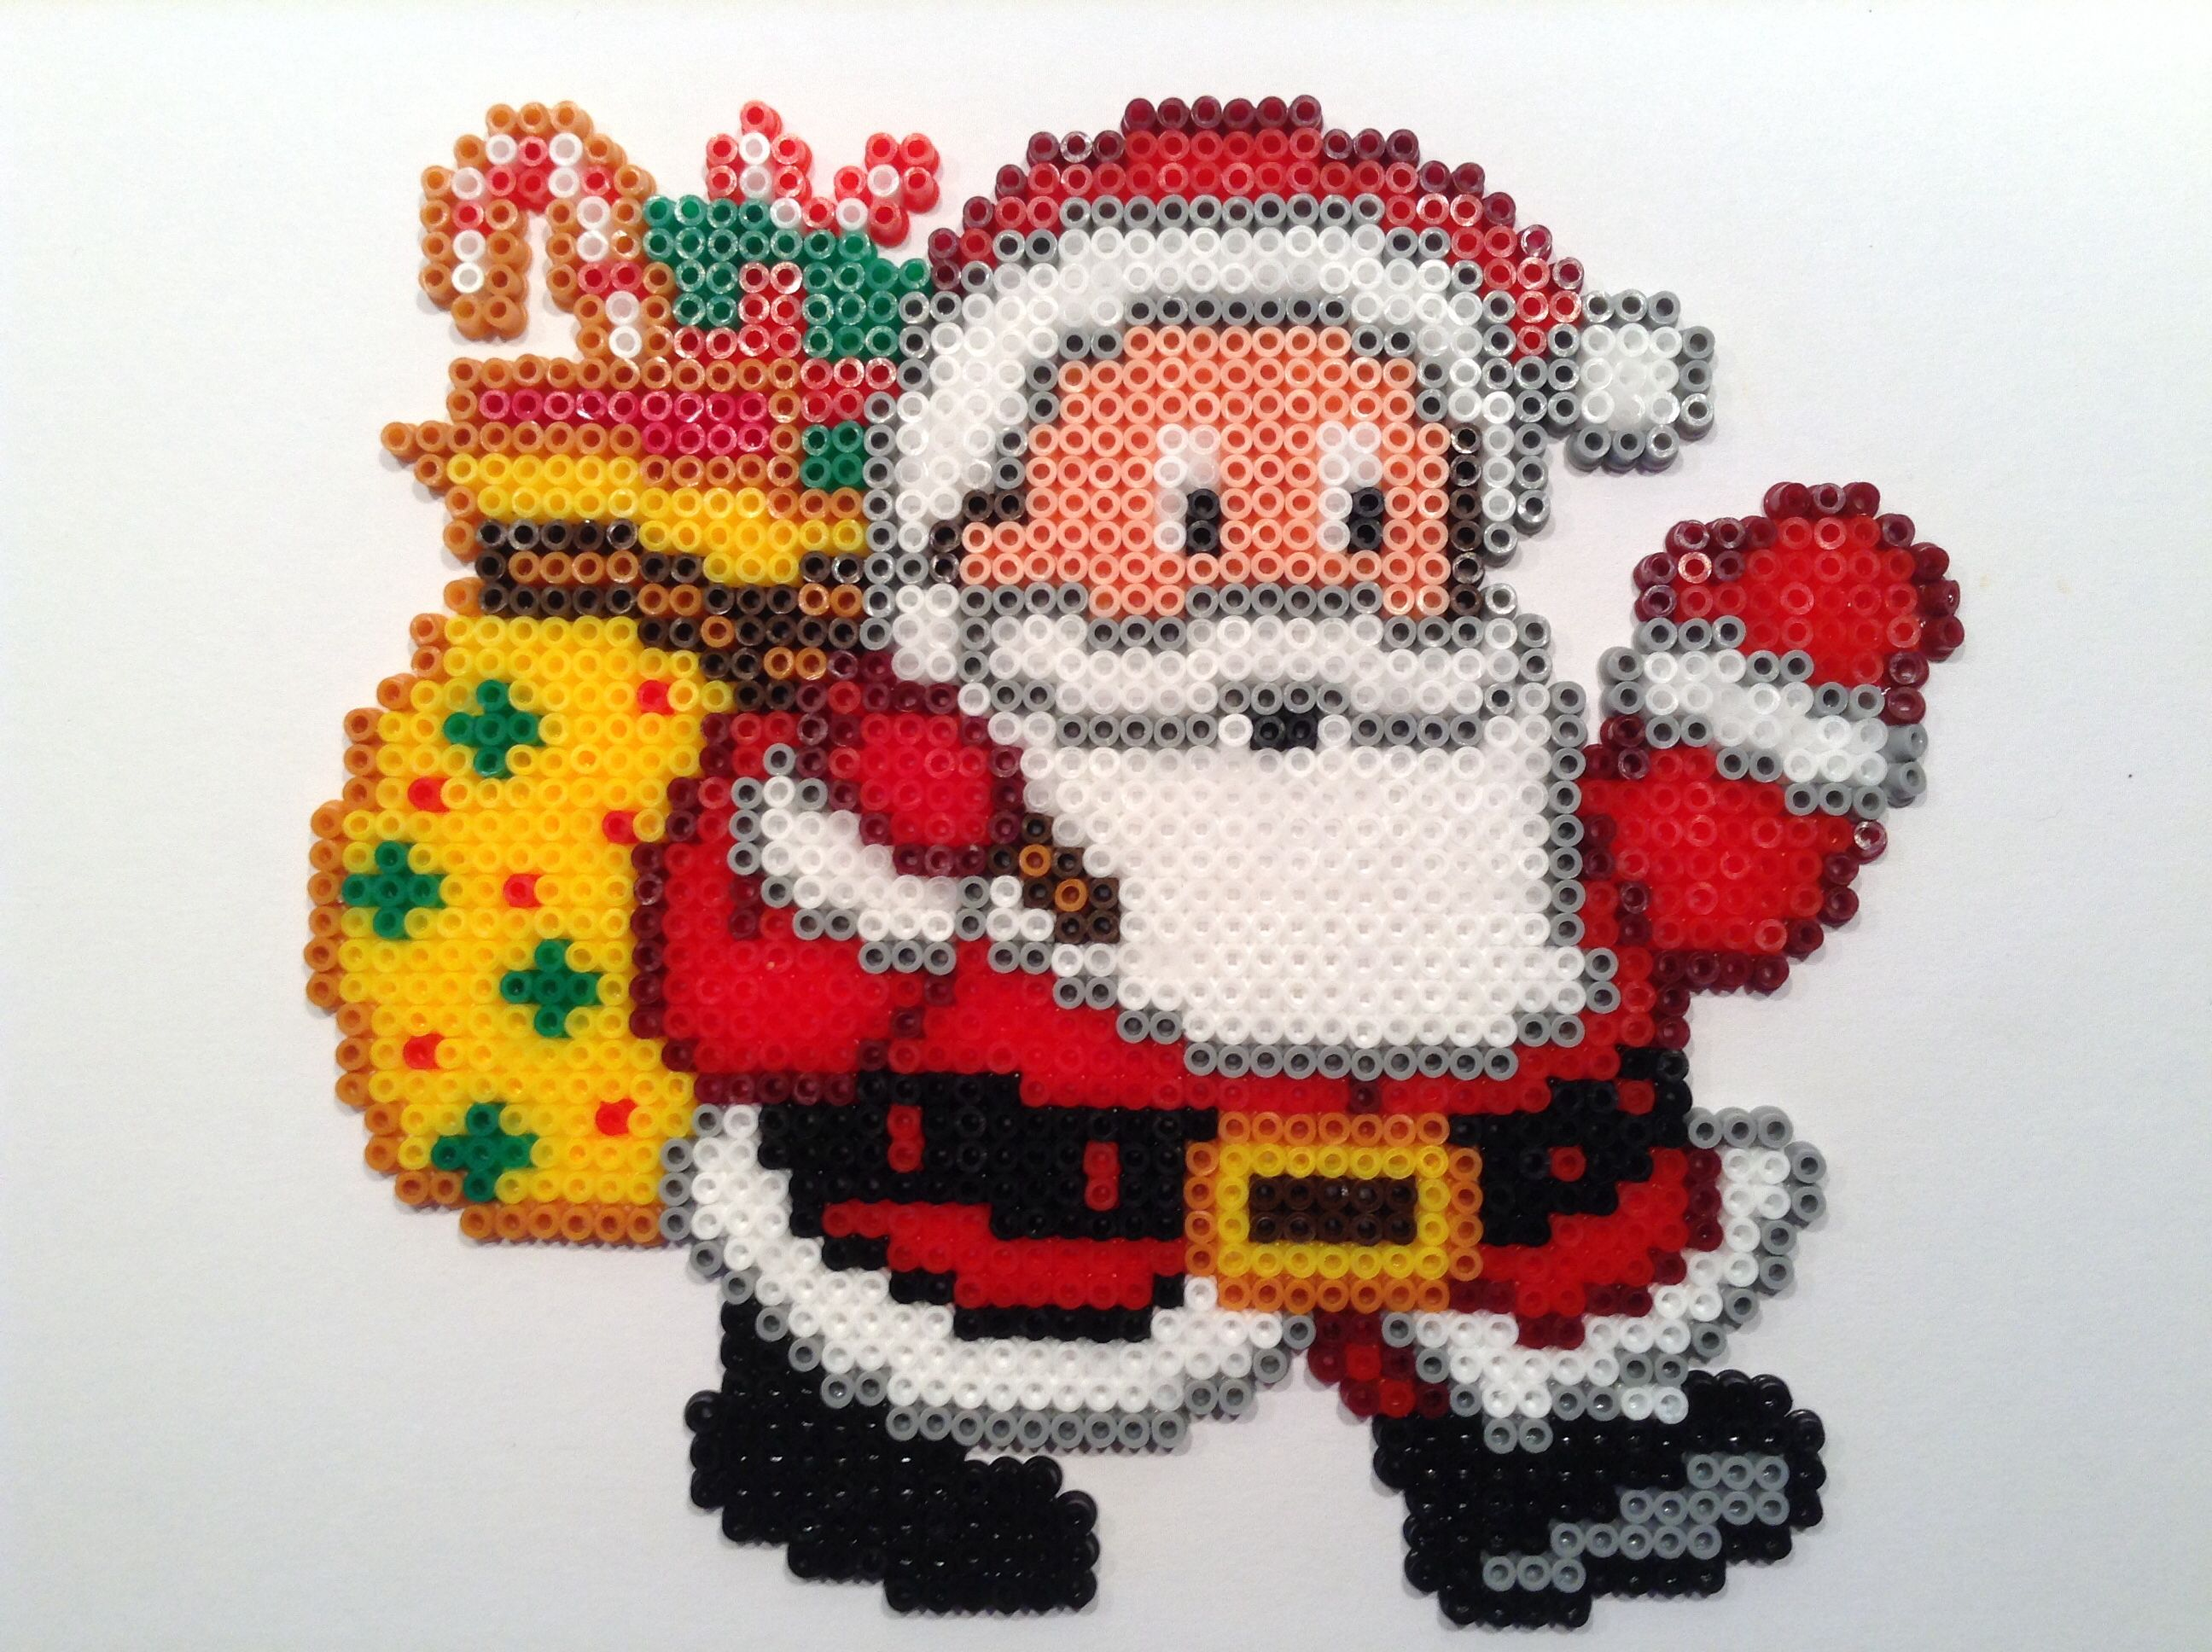 Santa Christmas hama beads by Helle Petersen